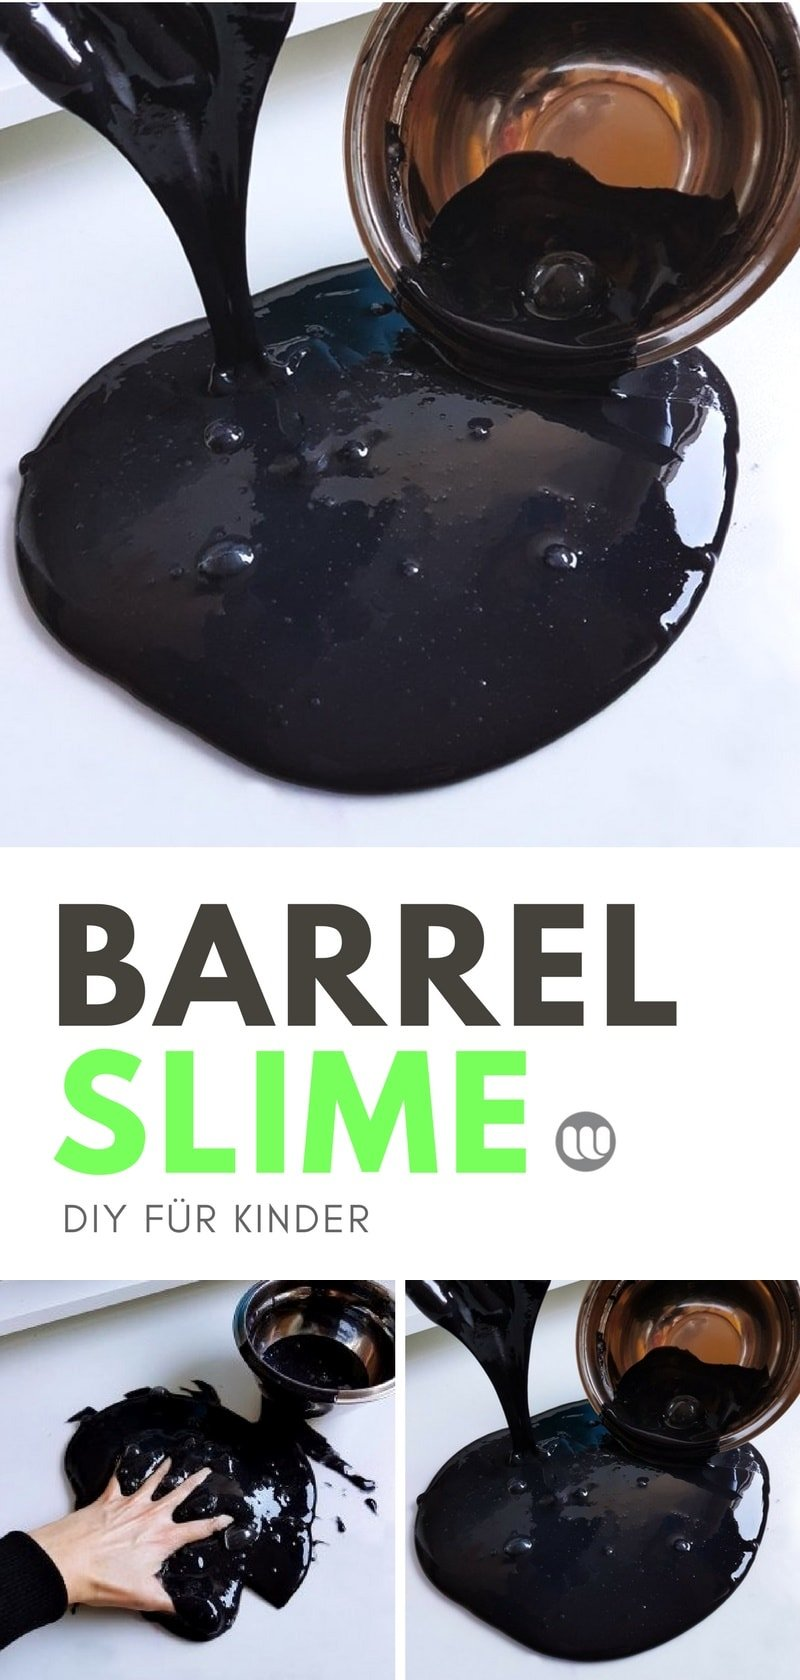 barrel o slime selber machen diy schleim im l fass. Black Bedroom Furniture Sets. Home Design Ideas